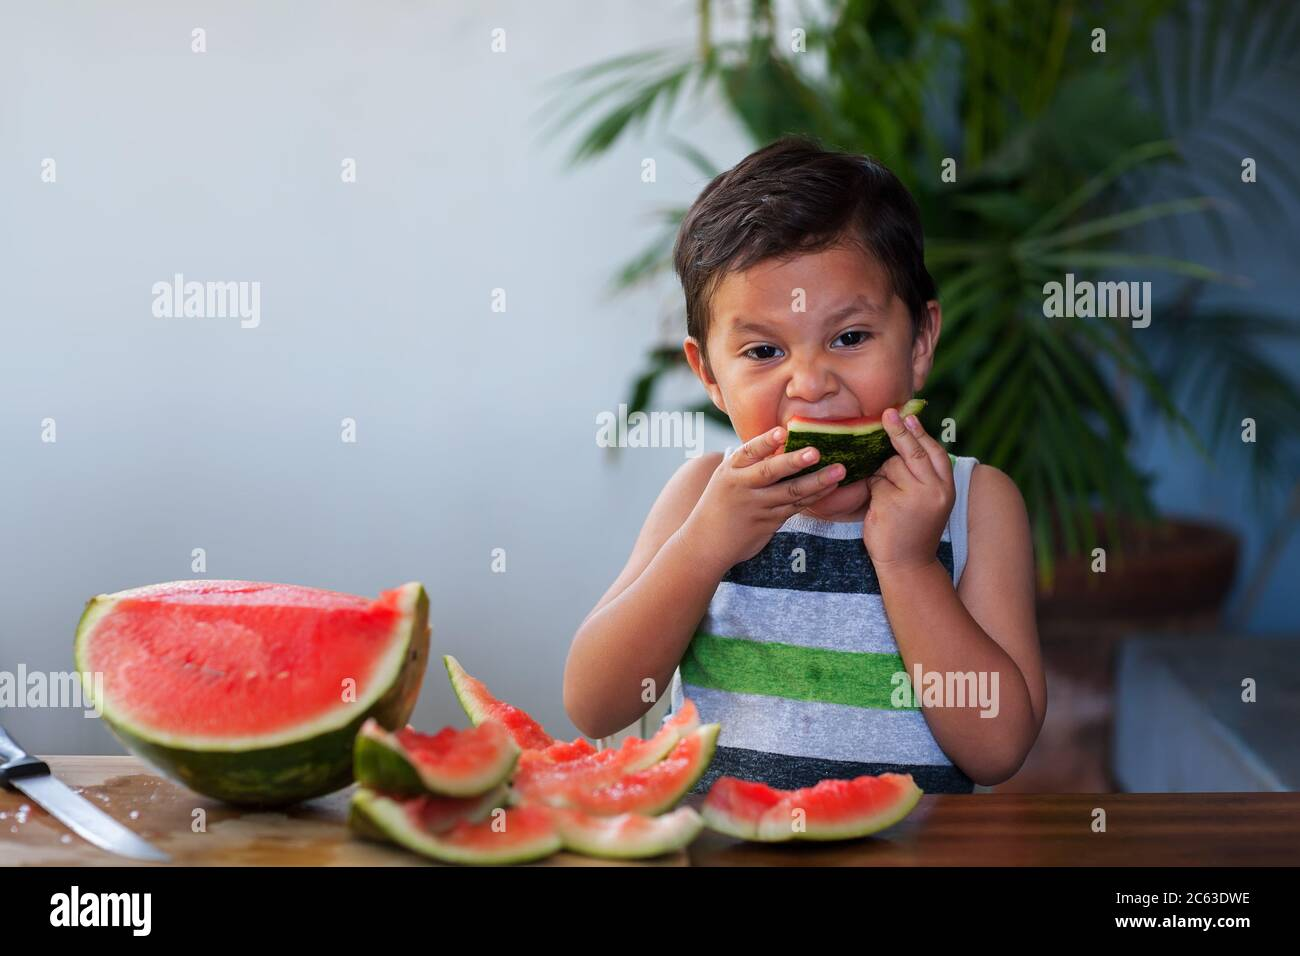 Young boy taking a bite from a slice of watermelon he holds to his mouth during summer. Stock Photo